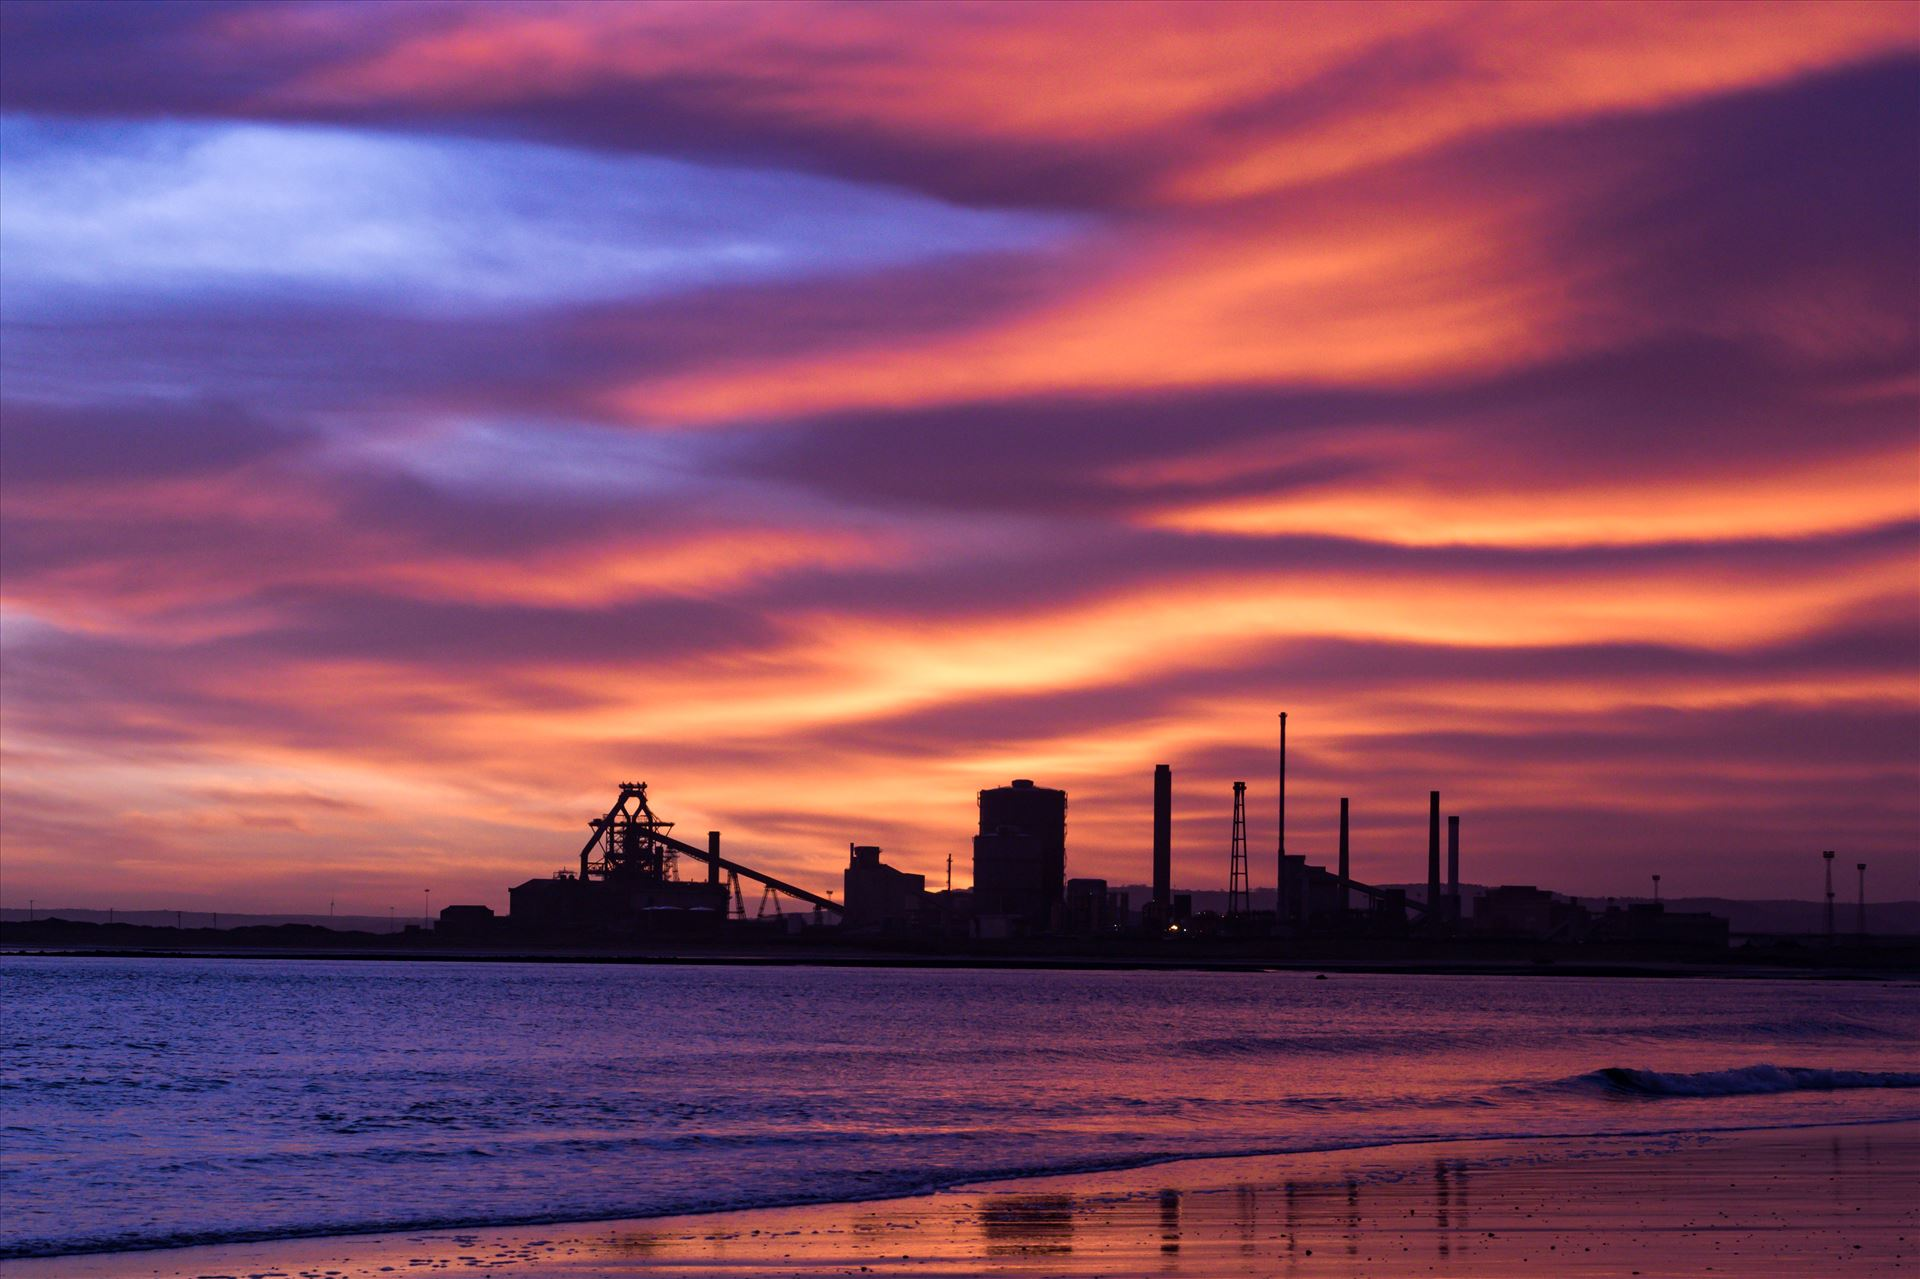 SSI Redcar Steel Works Sunrise, just the hint of blue - Taken on the 2/01/18 on a very cold Seaton Beach looking over the river to SSI Redcar Steel Works. with a hint of Blue skys by AJ Stoves Photography